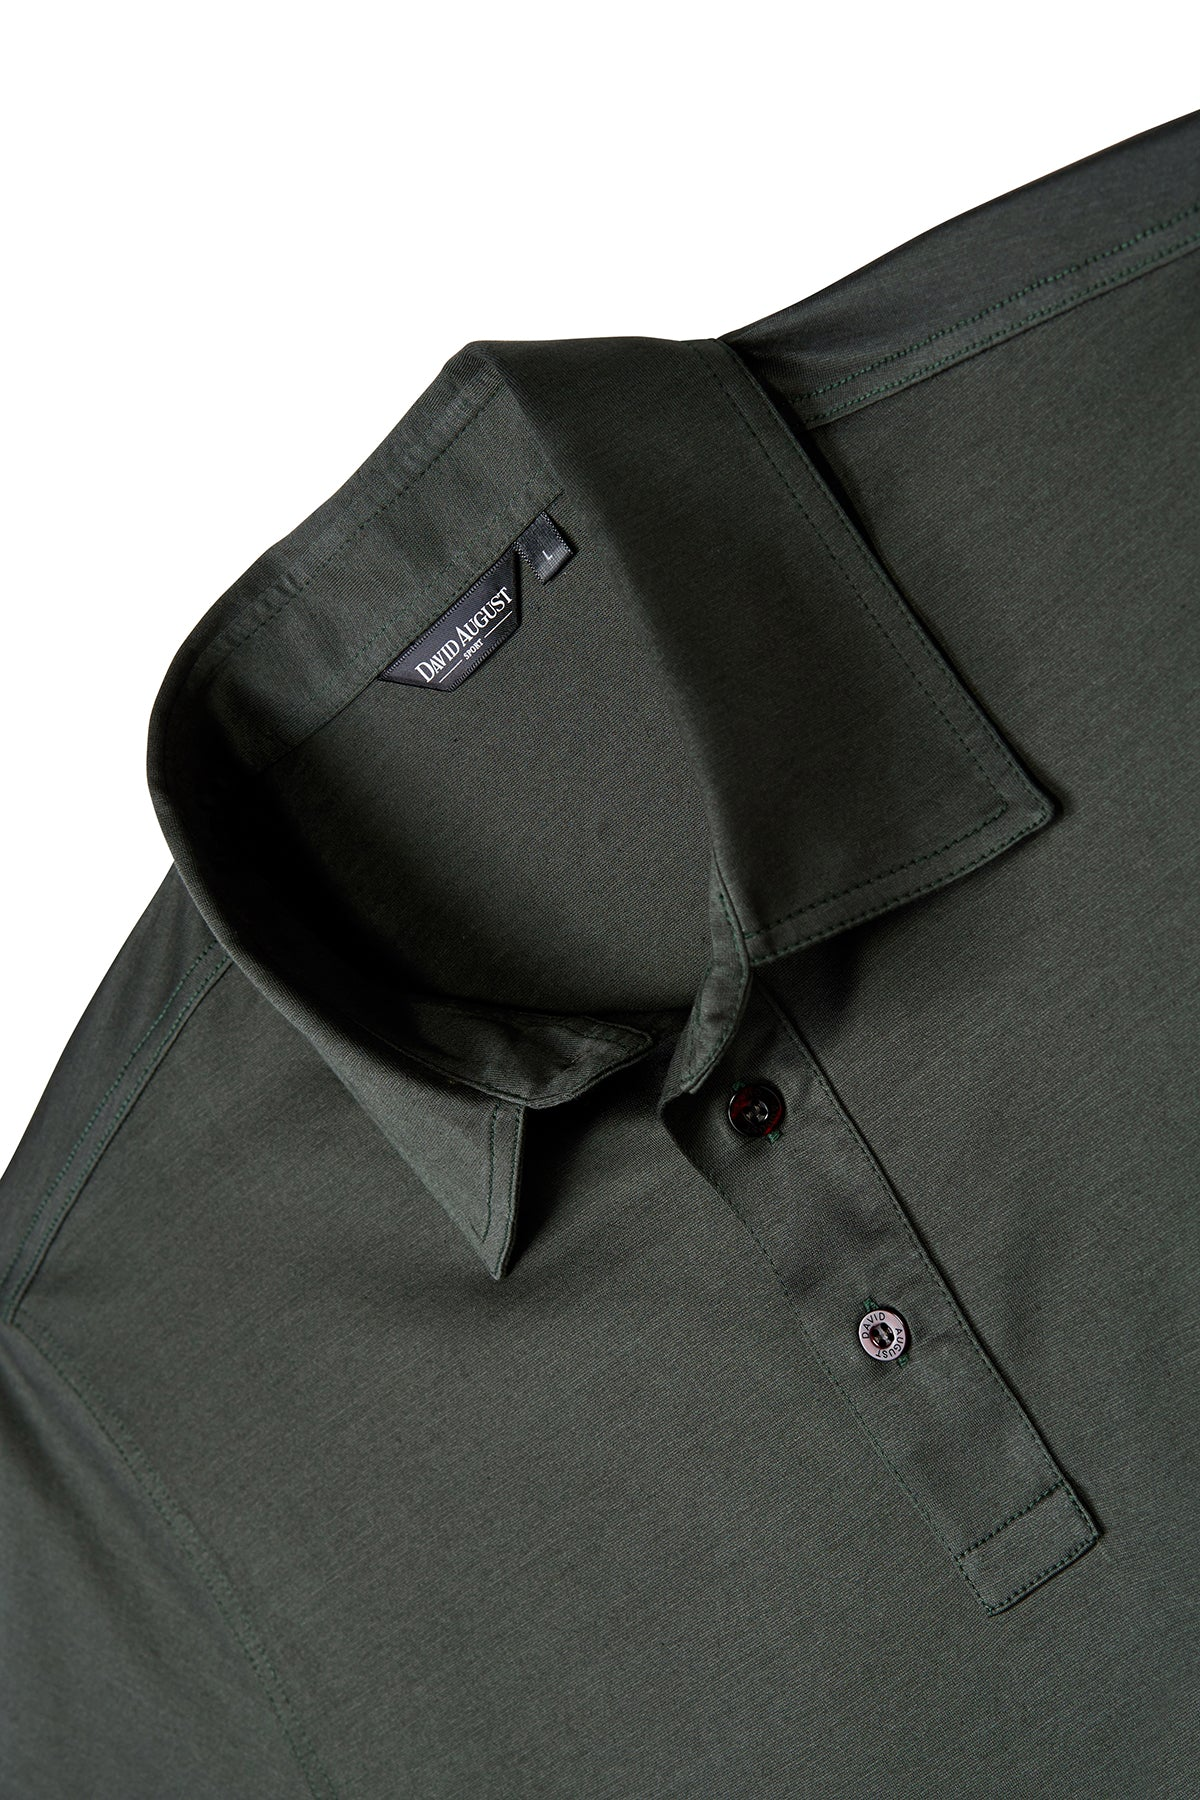 David August Mercerized Cotton Olive Polo